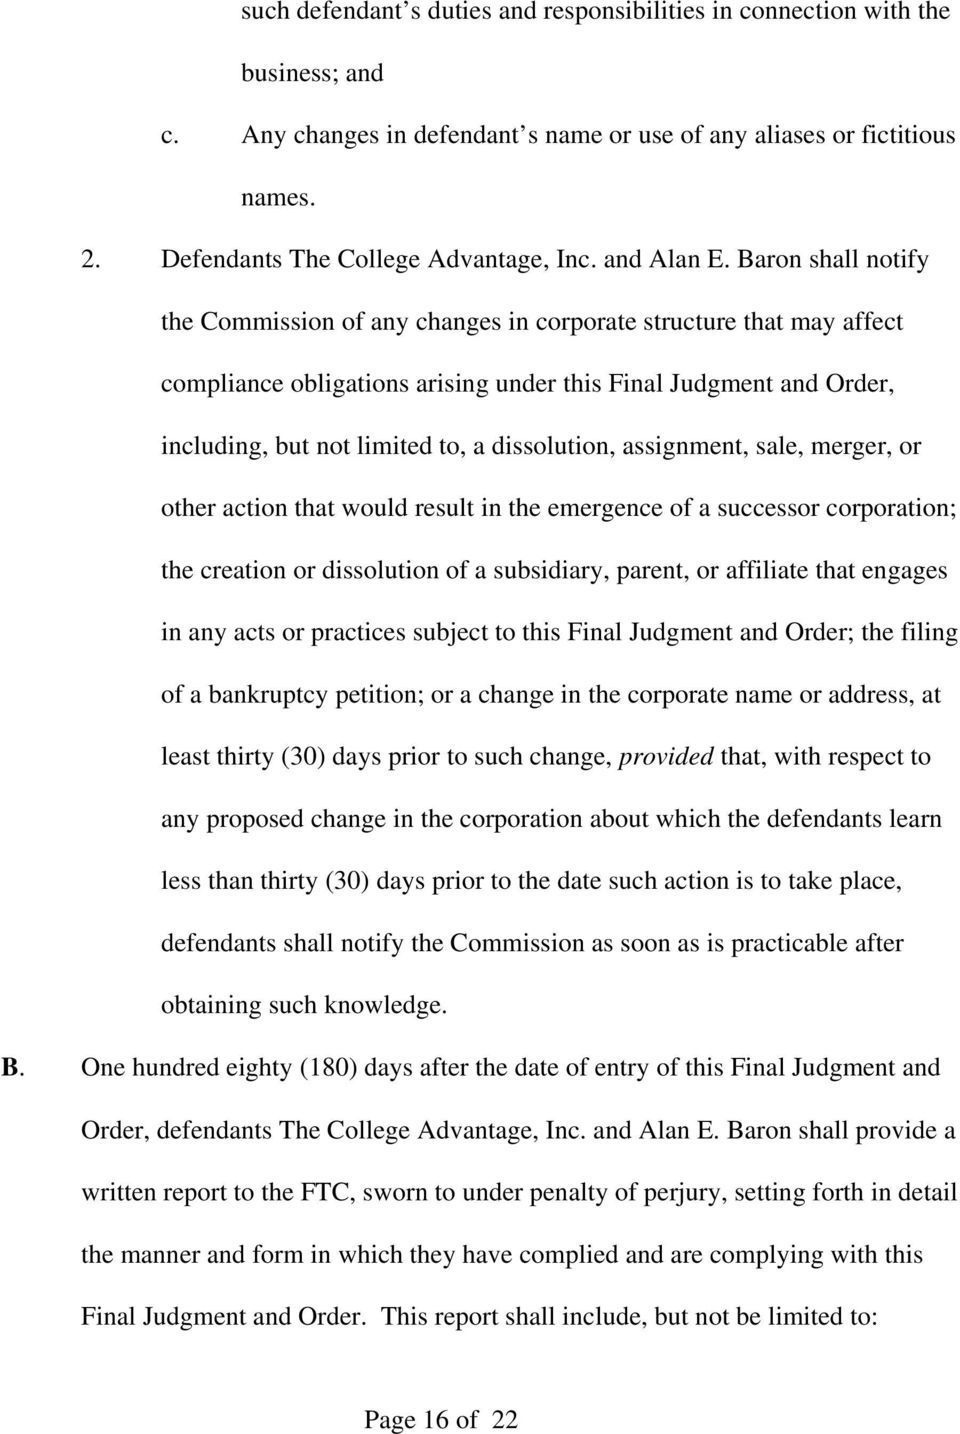 Baron shall notify the Commission of any changes in corporate structure that may affect compliance obligations arising under this Final Judgment and Order, including, but not limited to, a